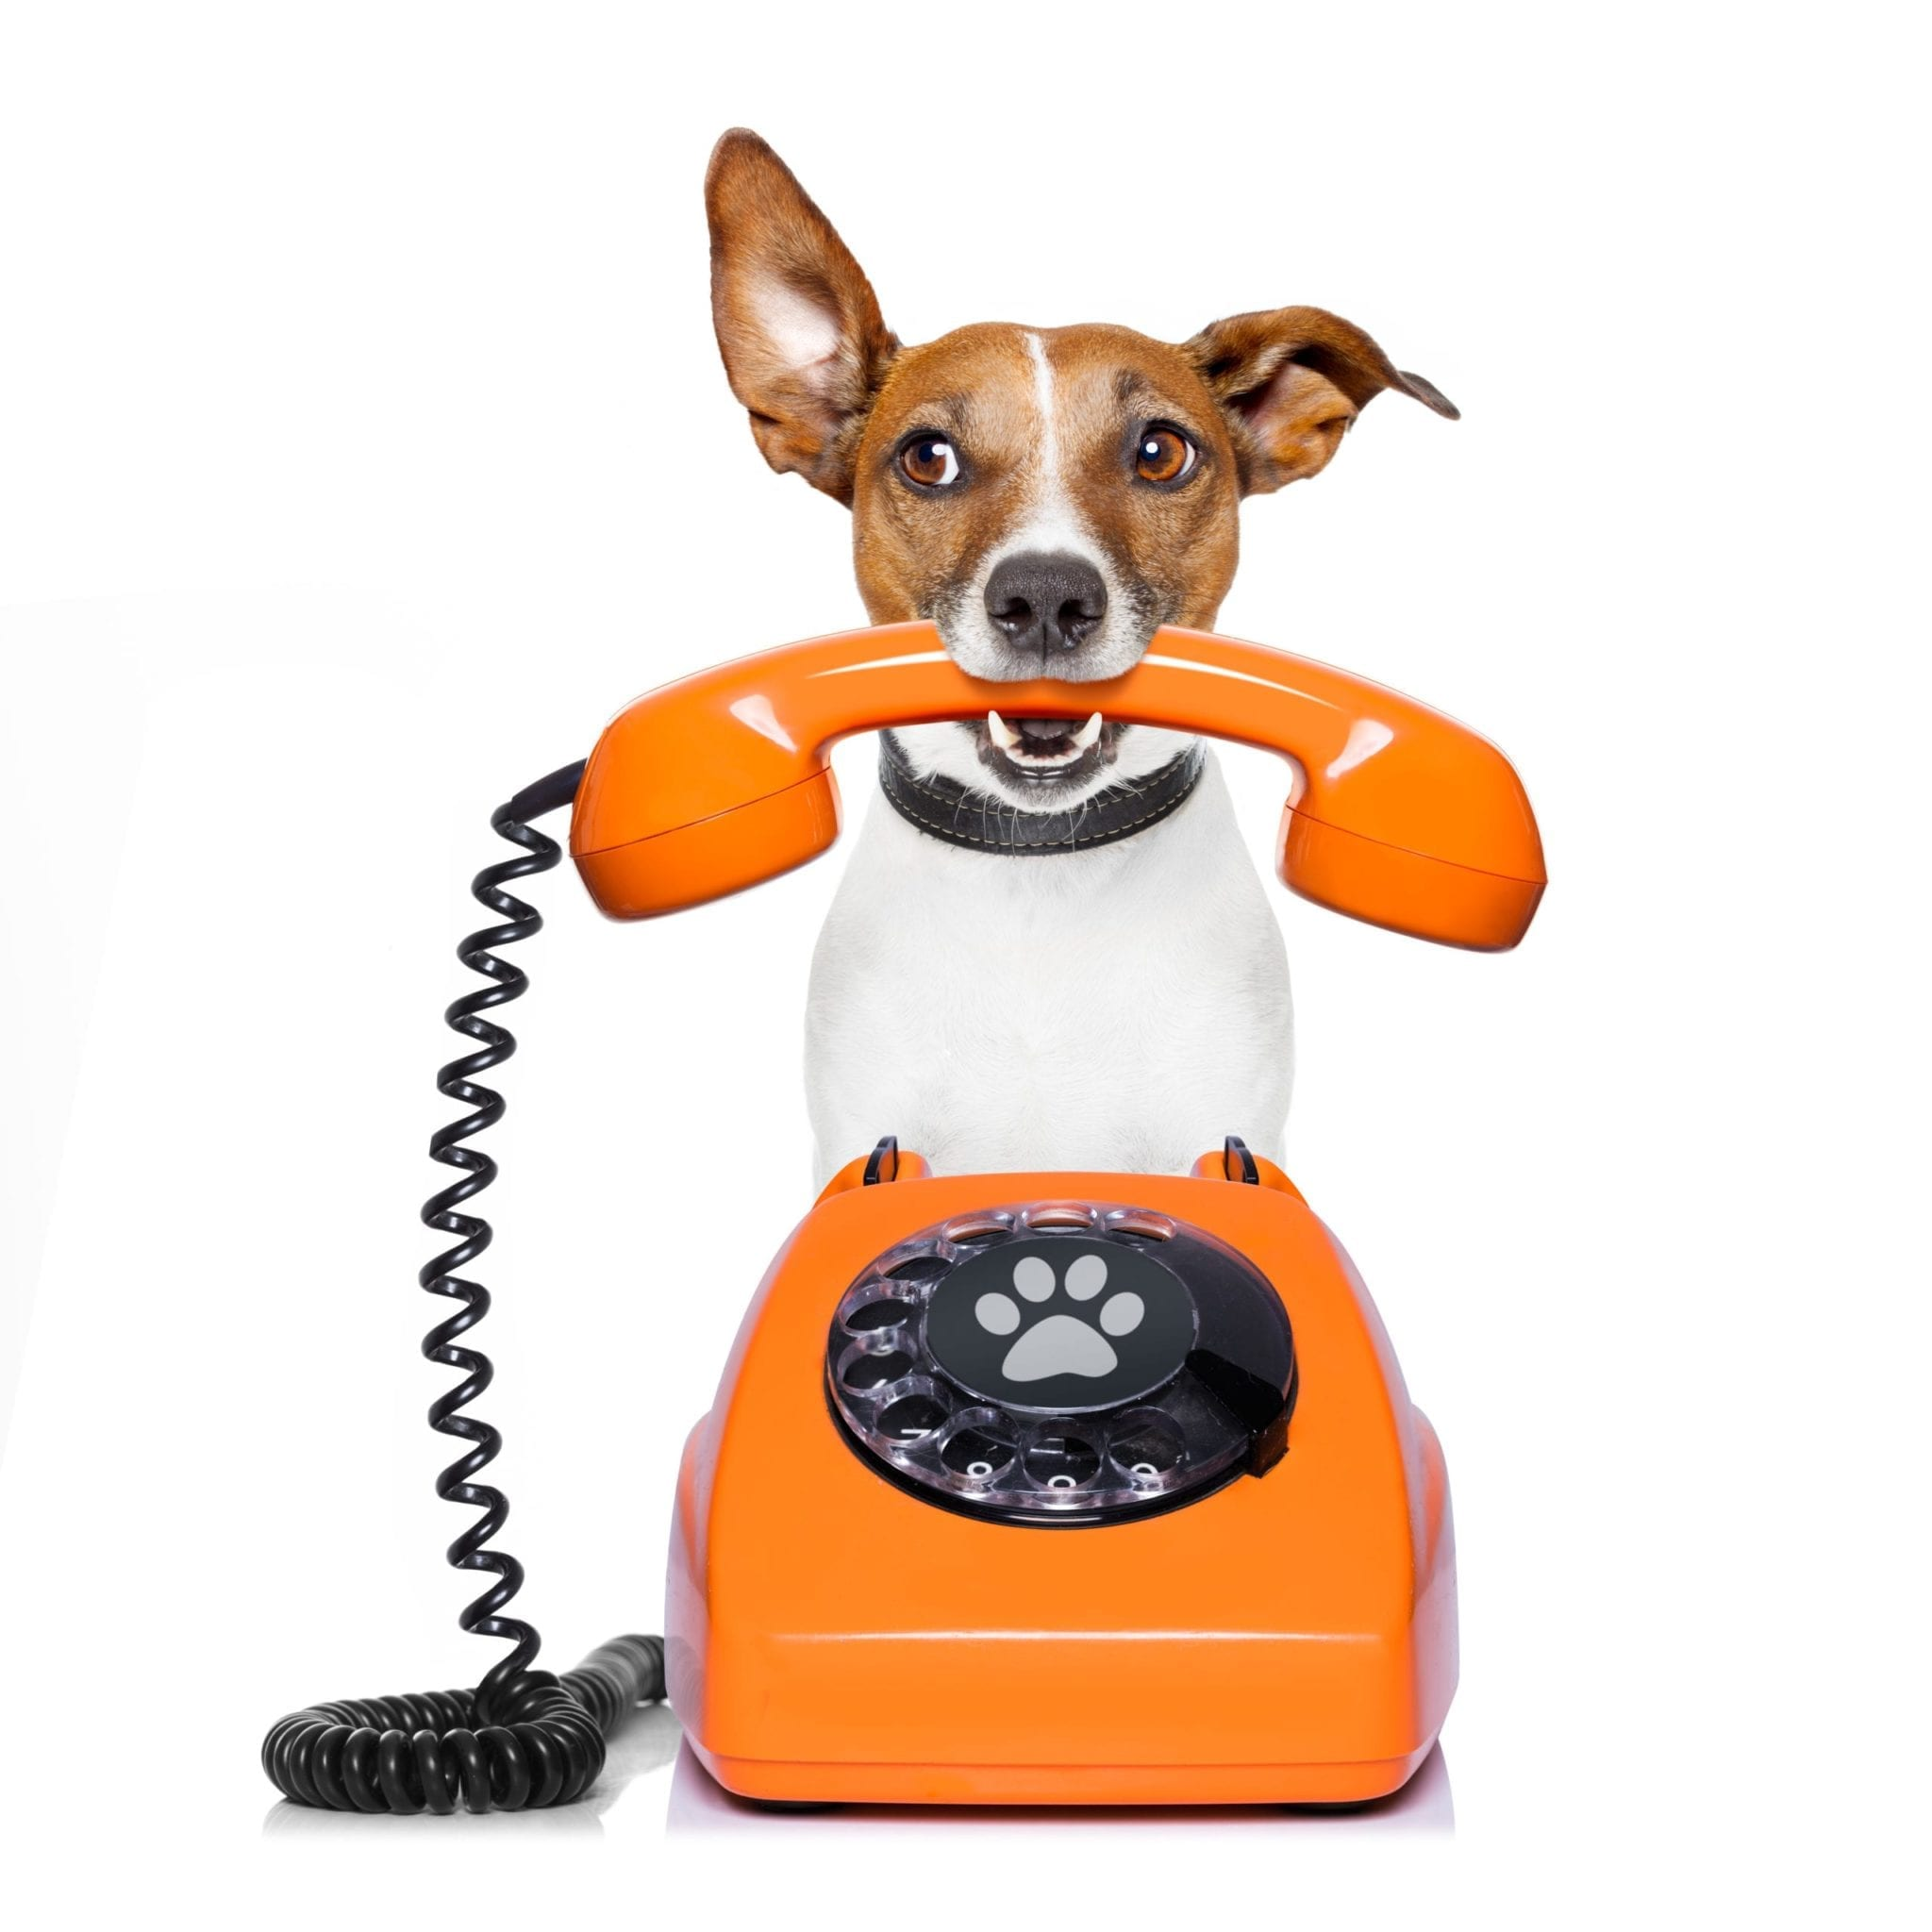 Jack russell dog with glasses as secretary or operator with red old  dial telephone or retro classic phone